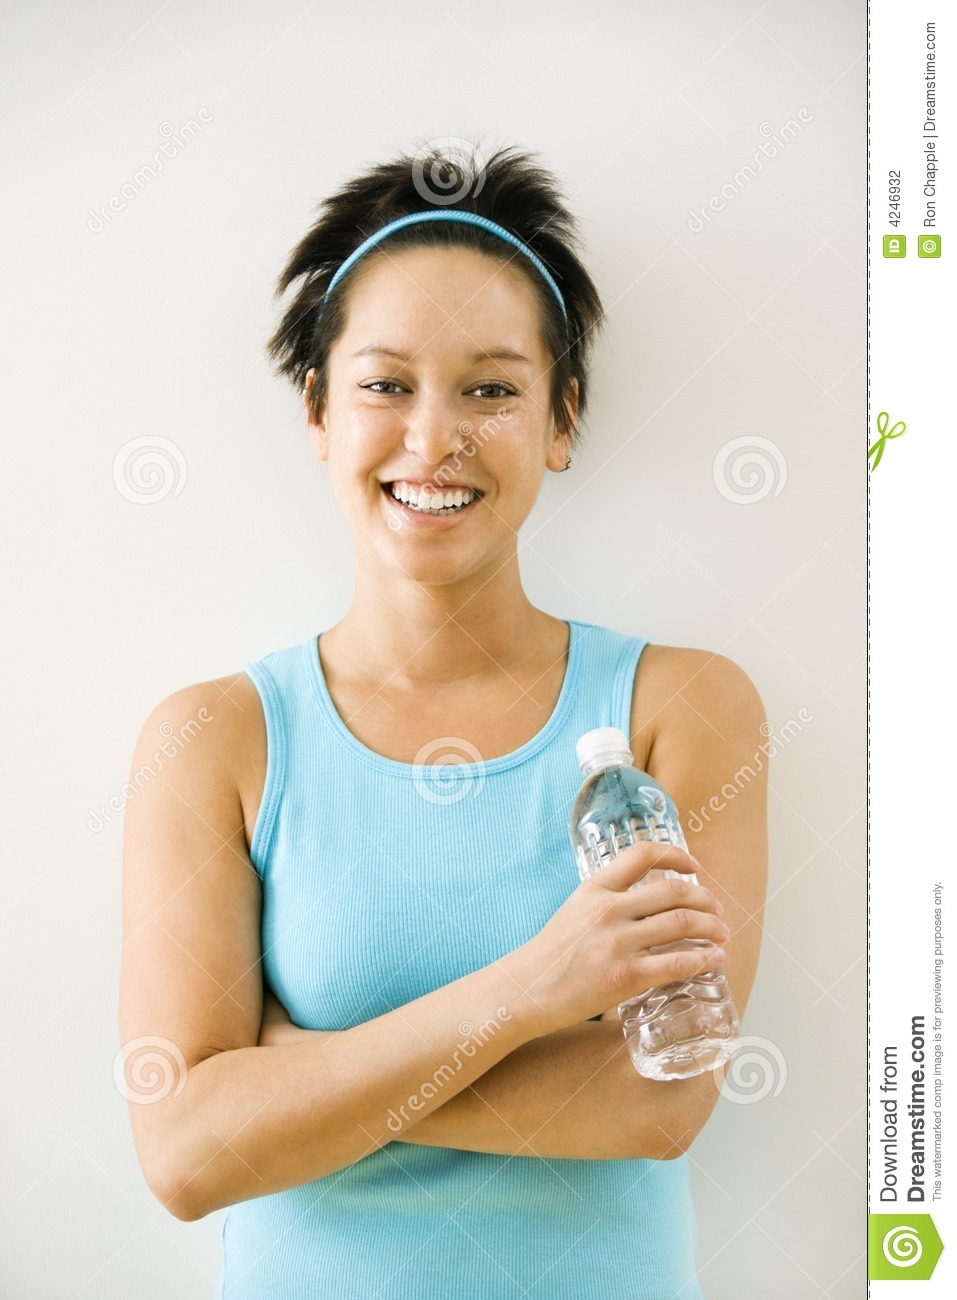 woman with bottled water stock photography image 4246932